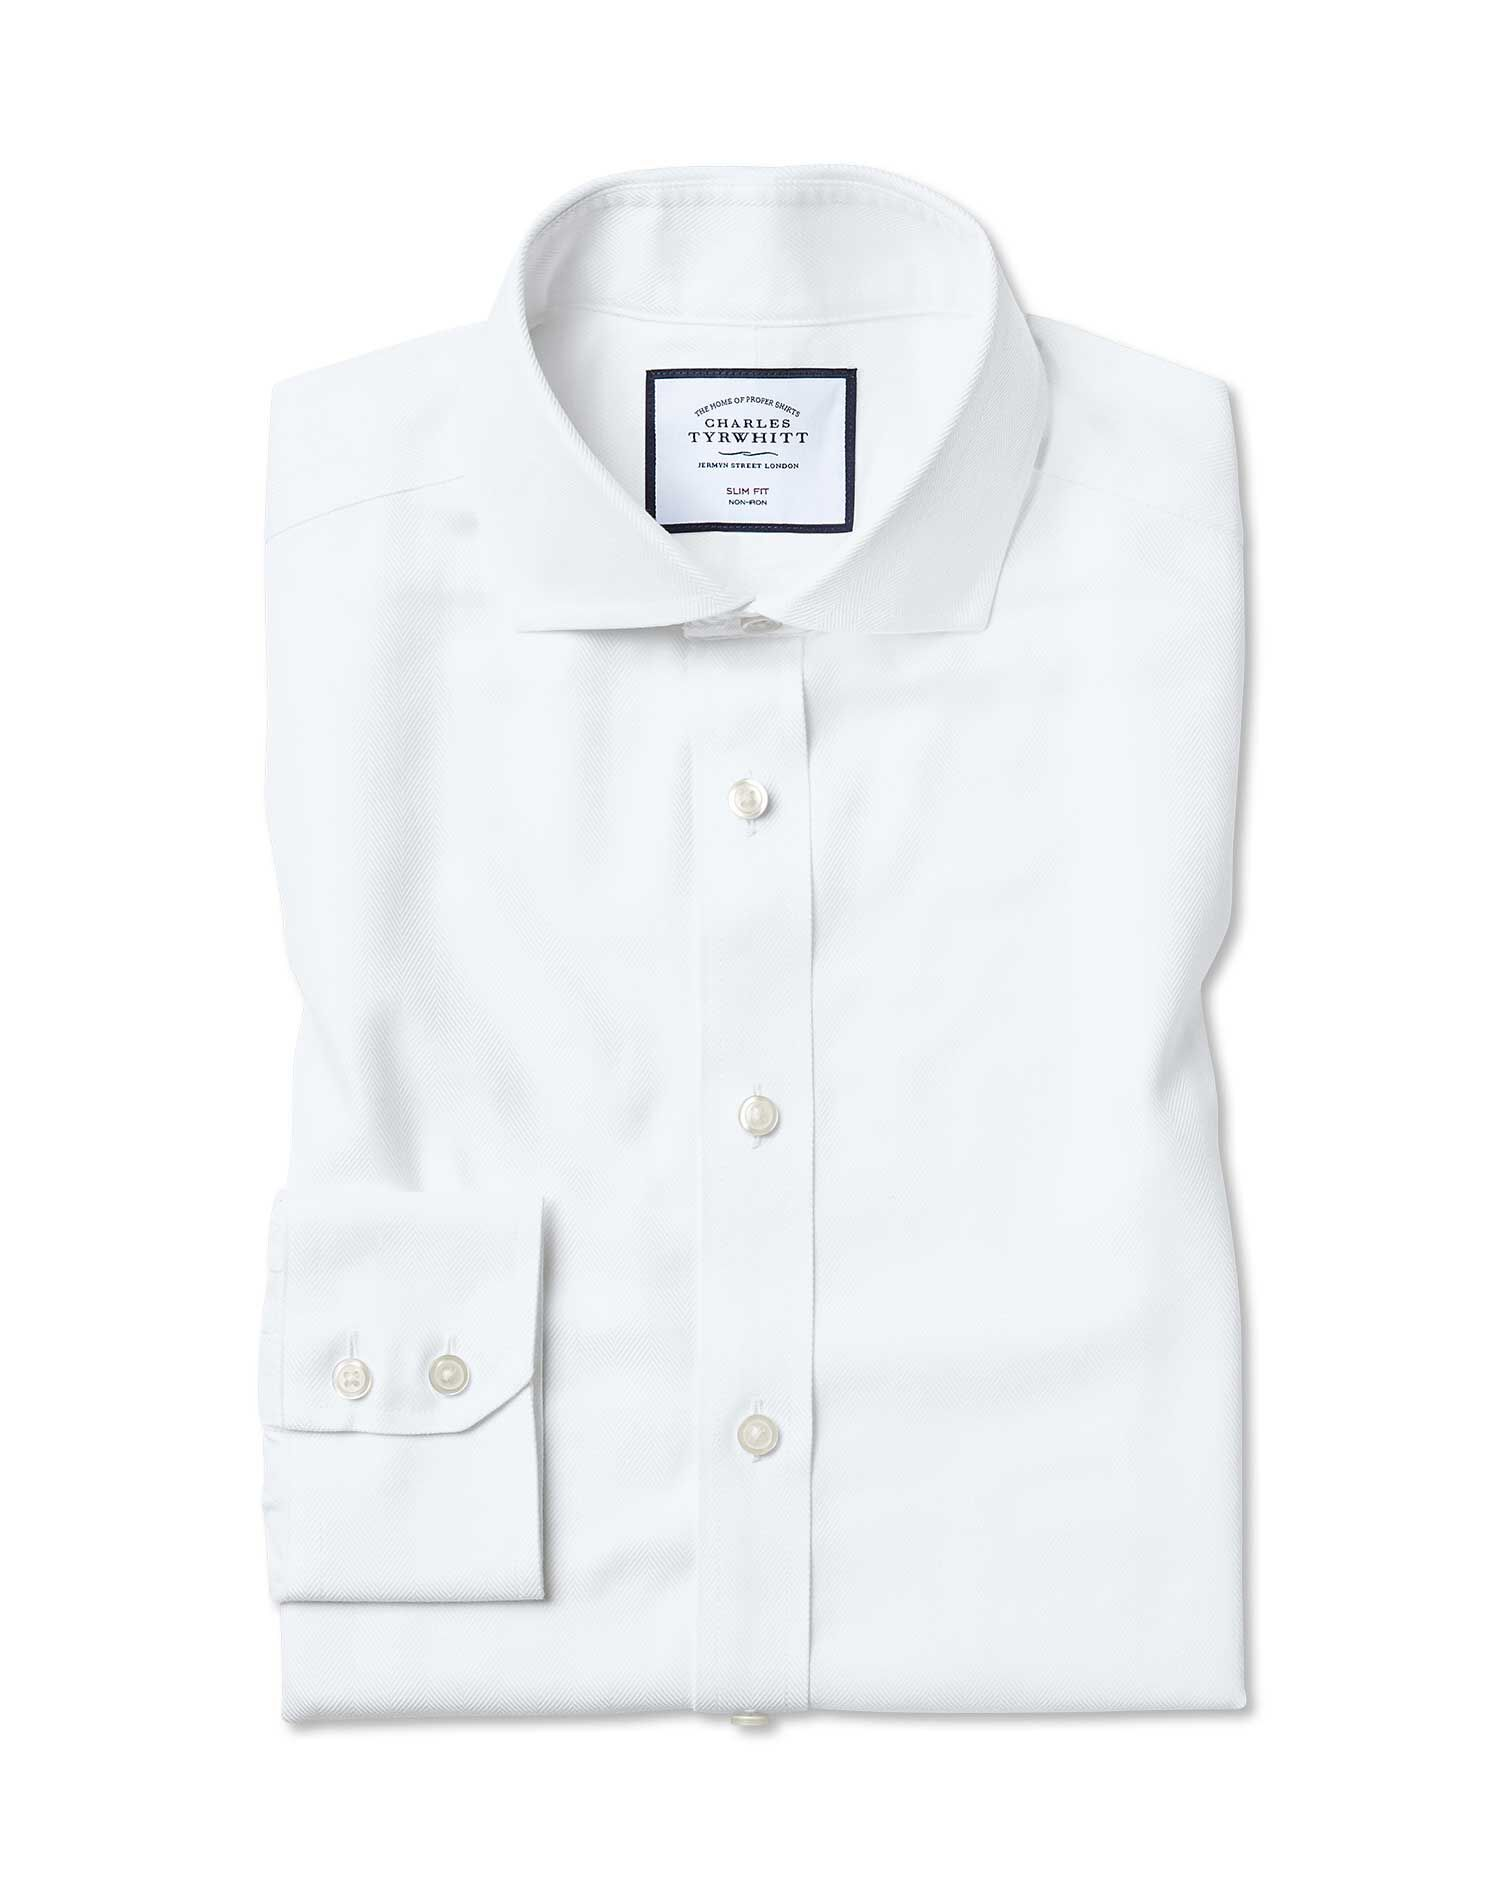 Extra Slim Fit Cutaway Collar Non-Iron Herringbone White Cotton Formal Shirt Double Cuff Size 15.5/3